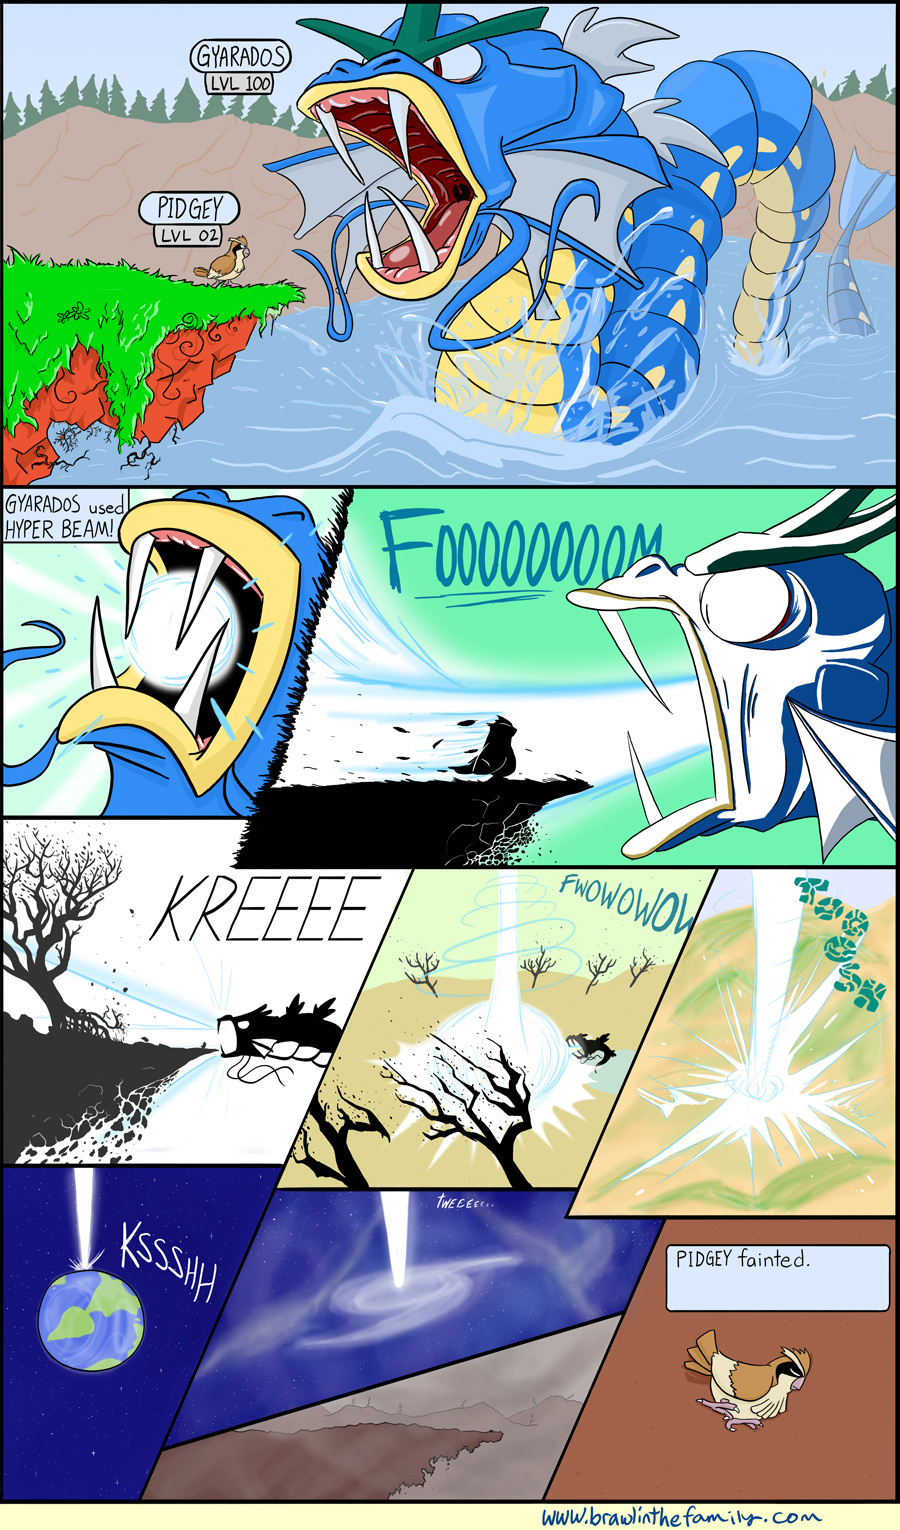 Gyarados trainers have it rough due to the collateral damage.